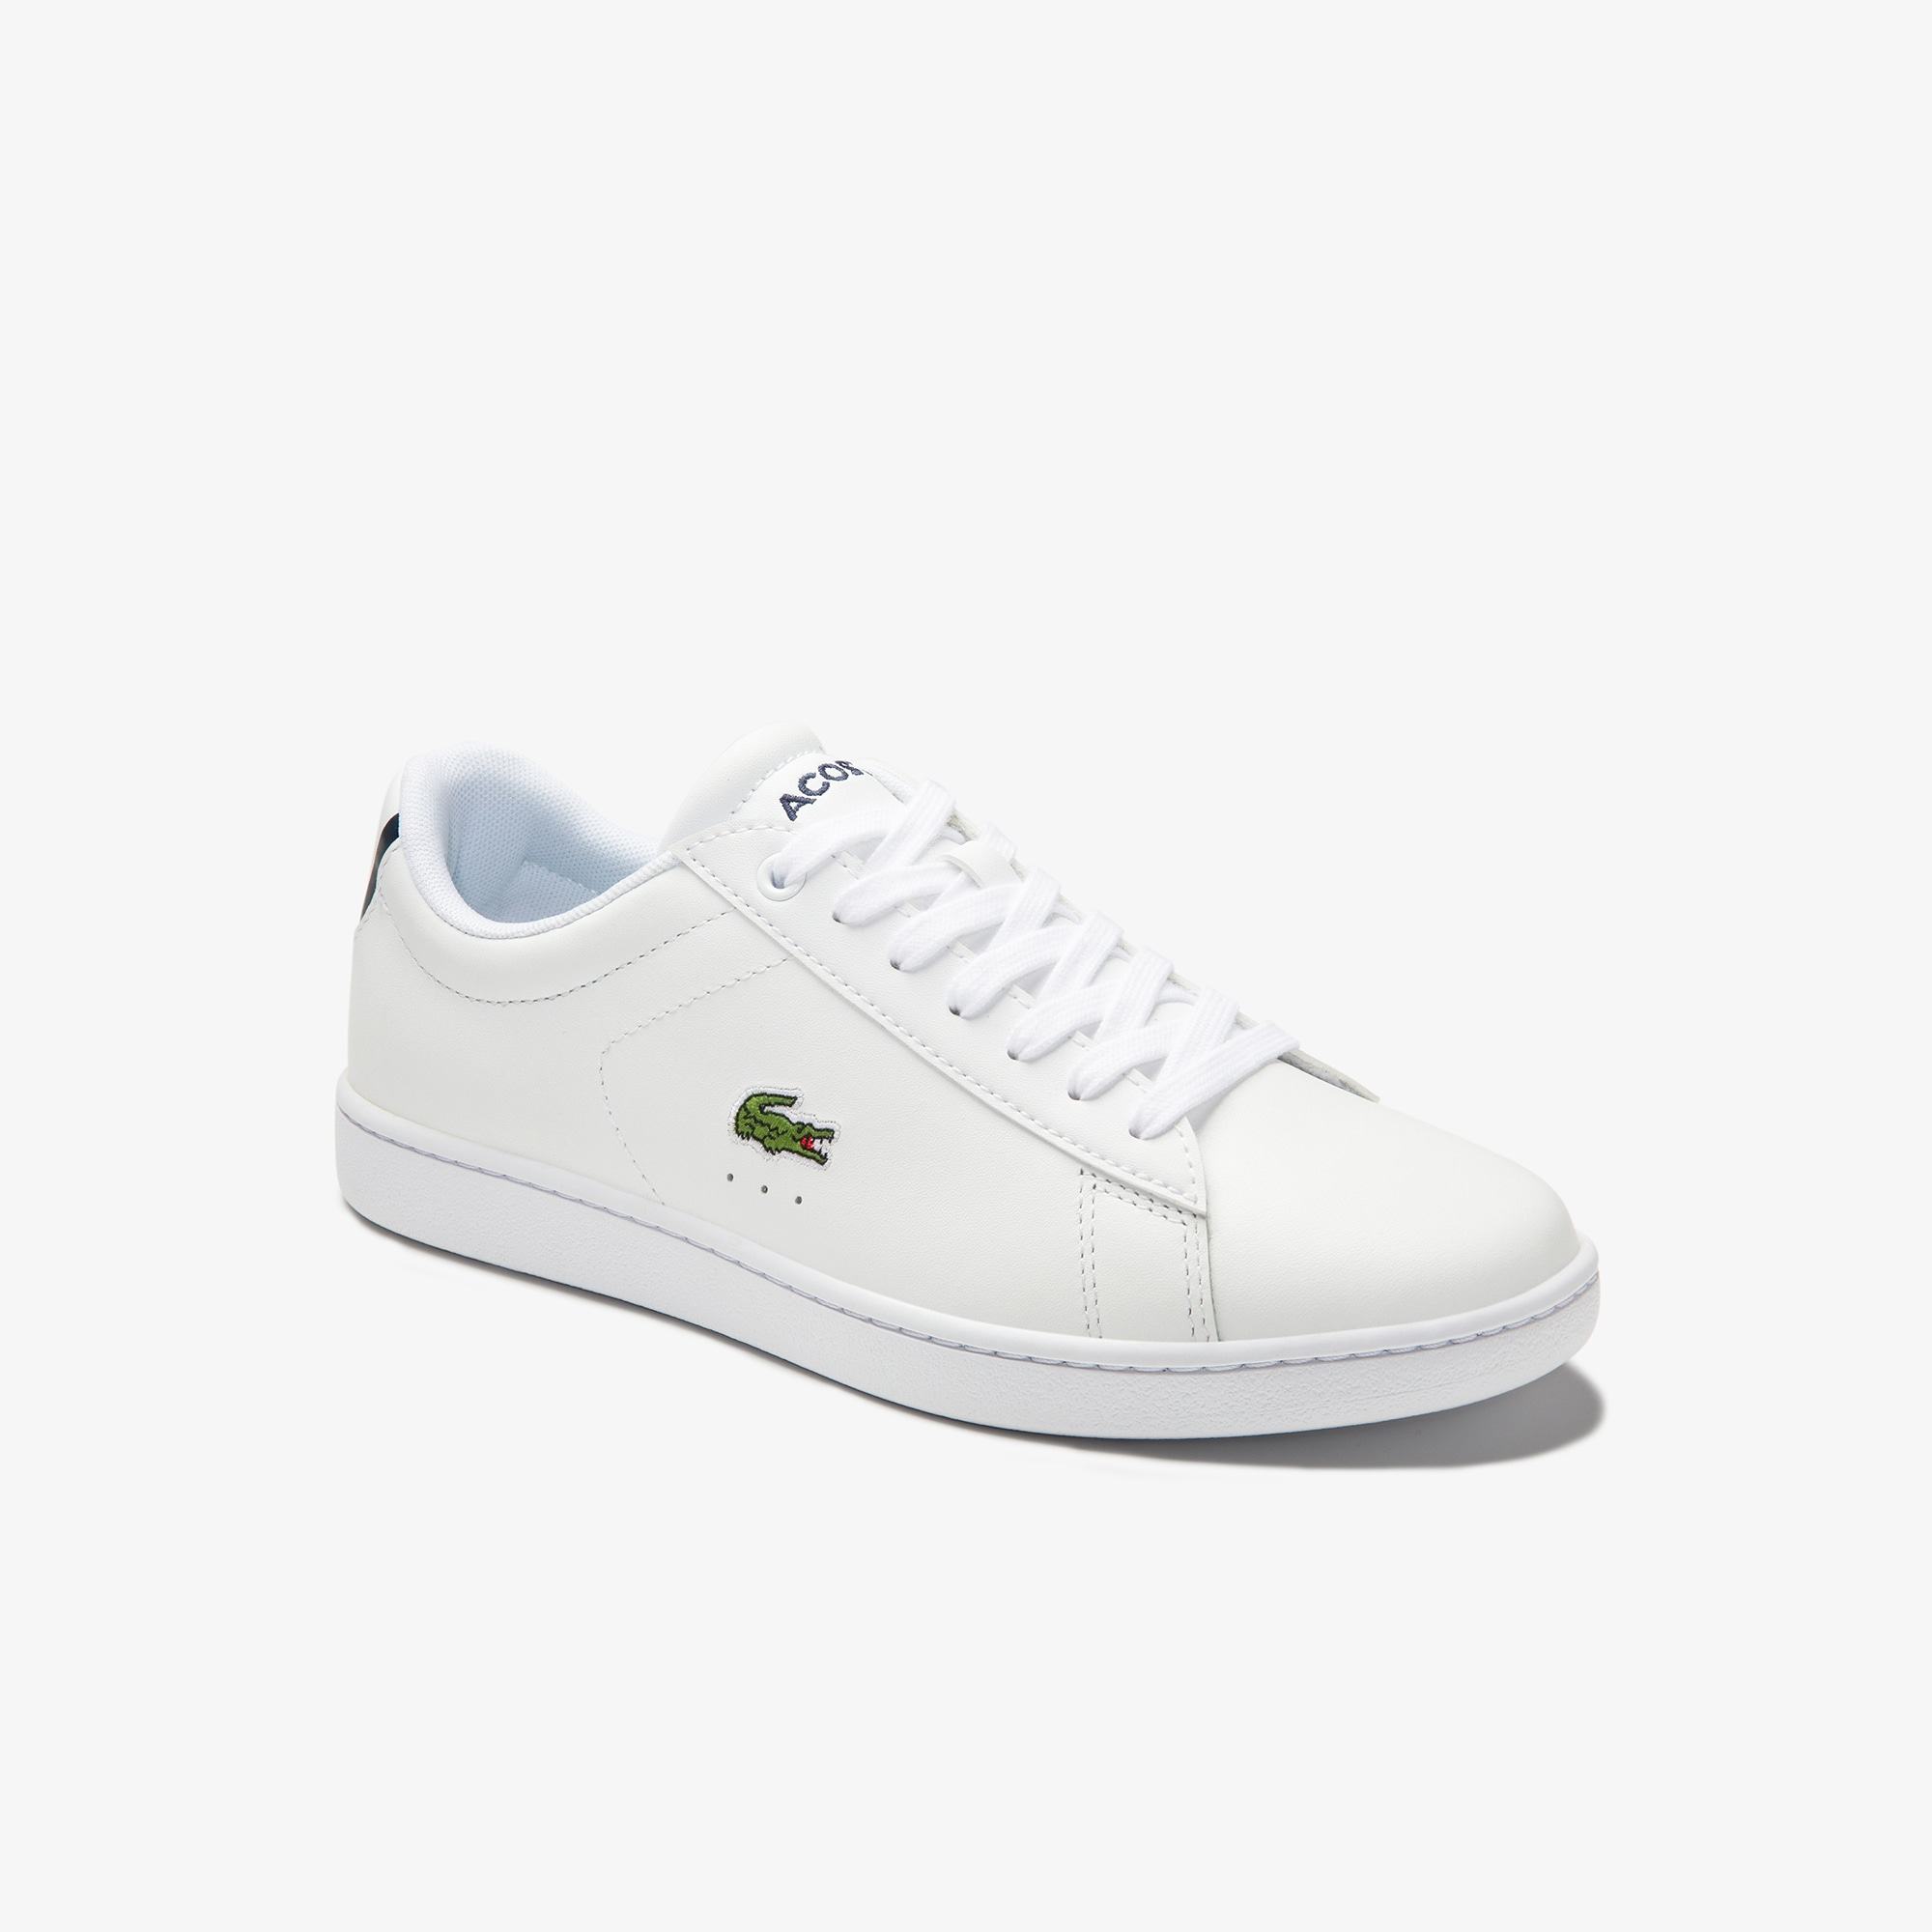 Women's Carnaby Evo Mesh-lined Leather Trainers